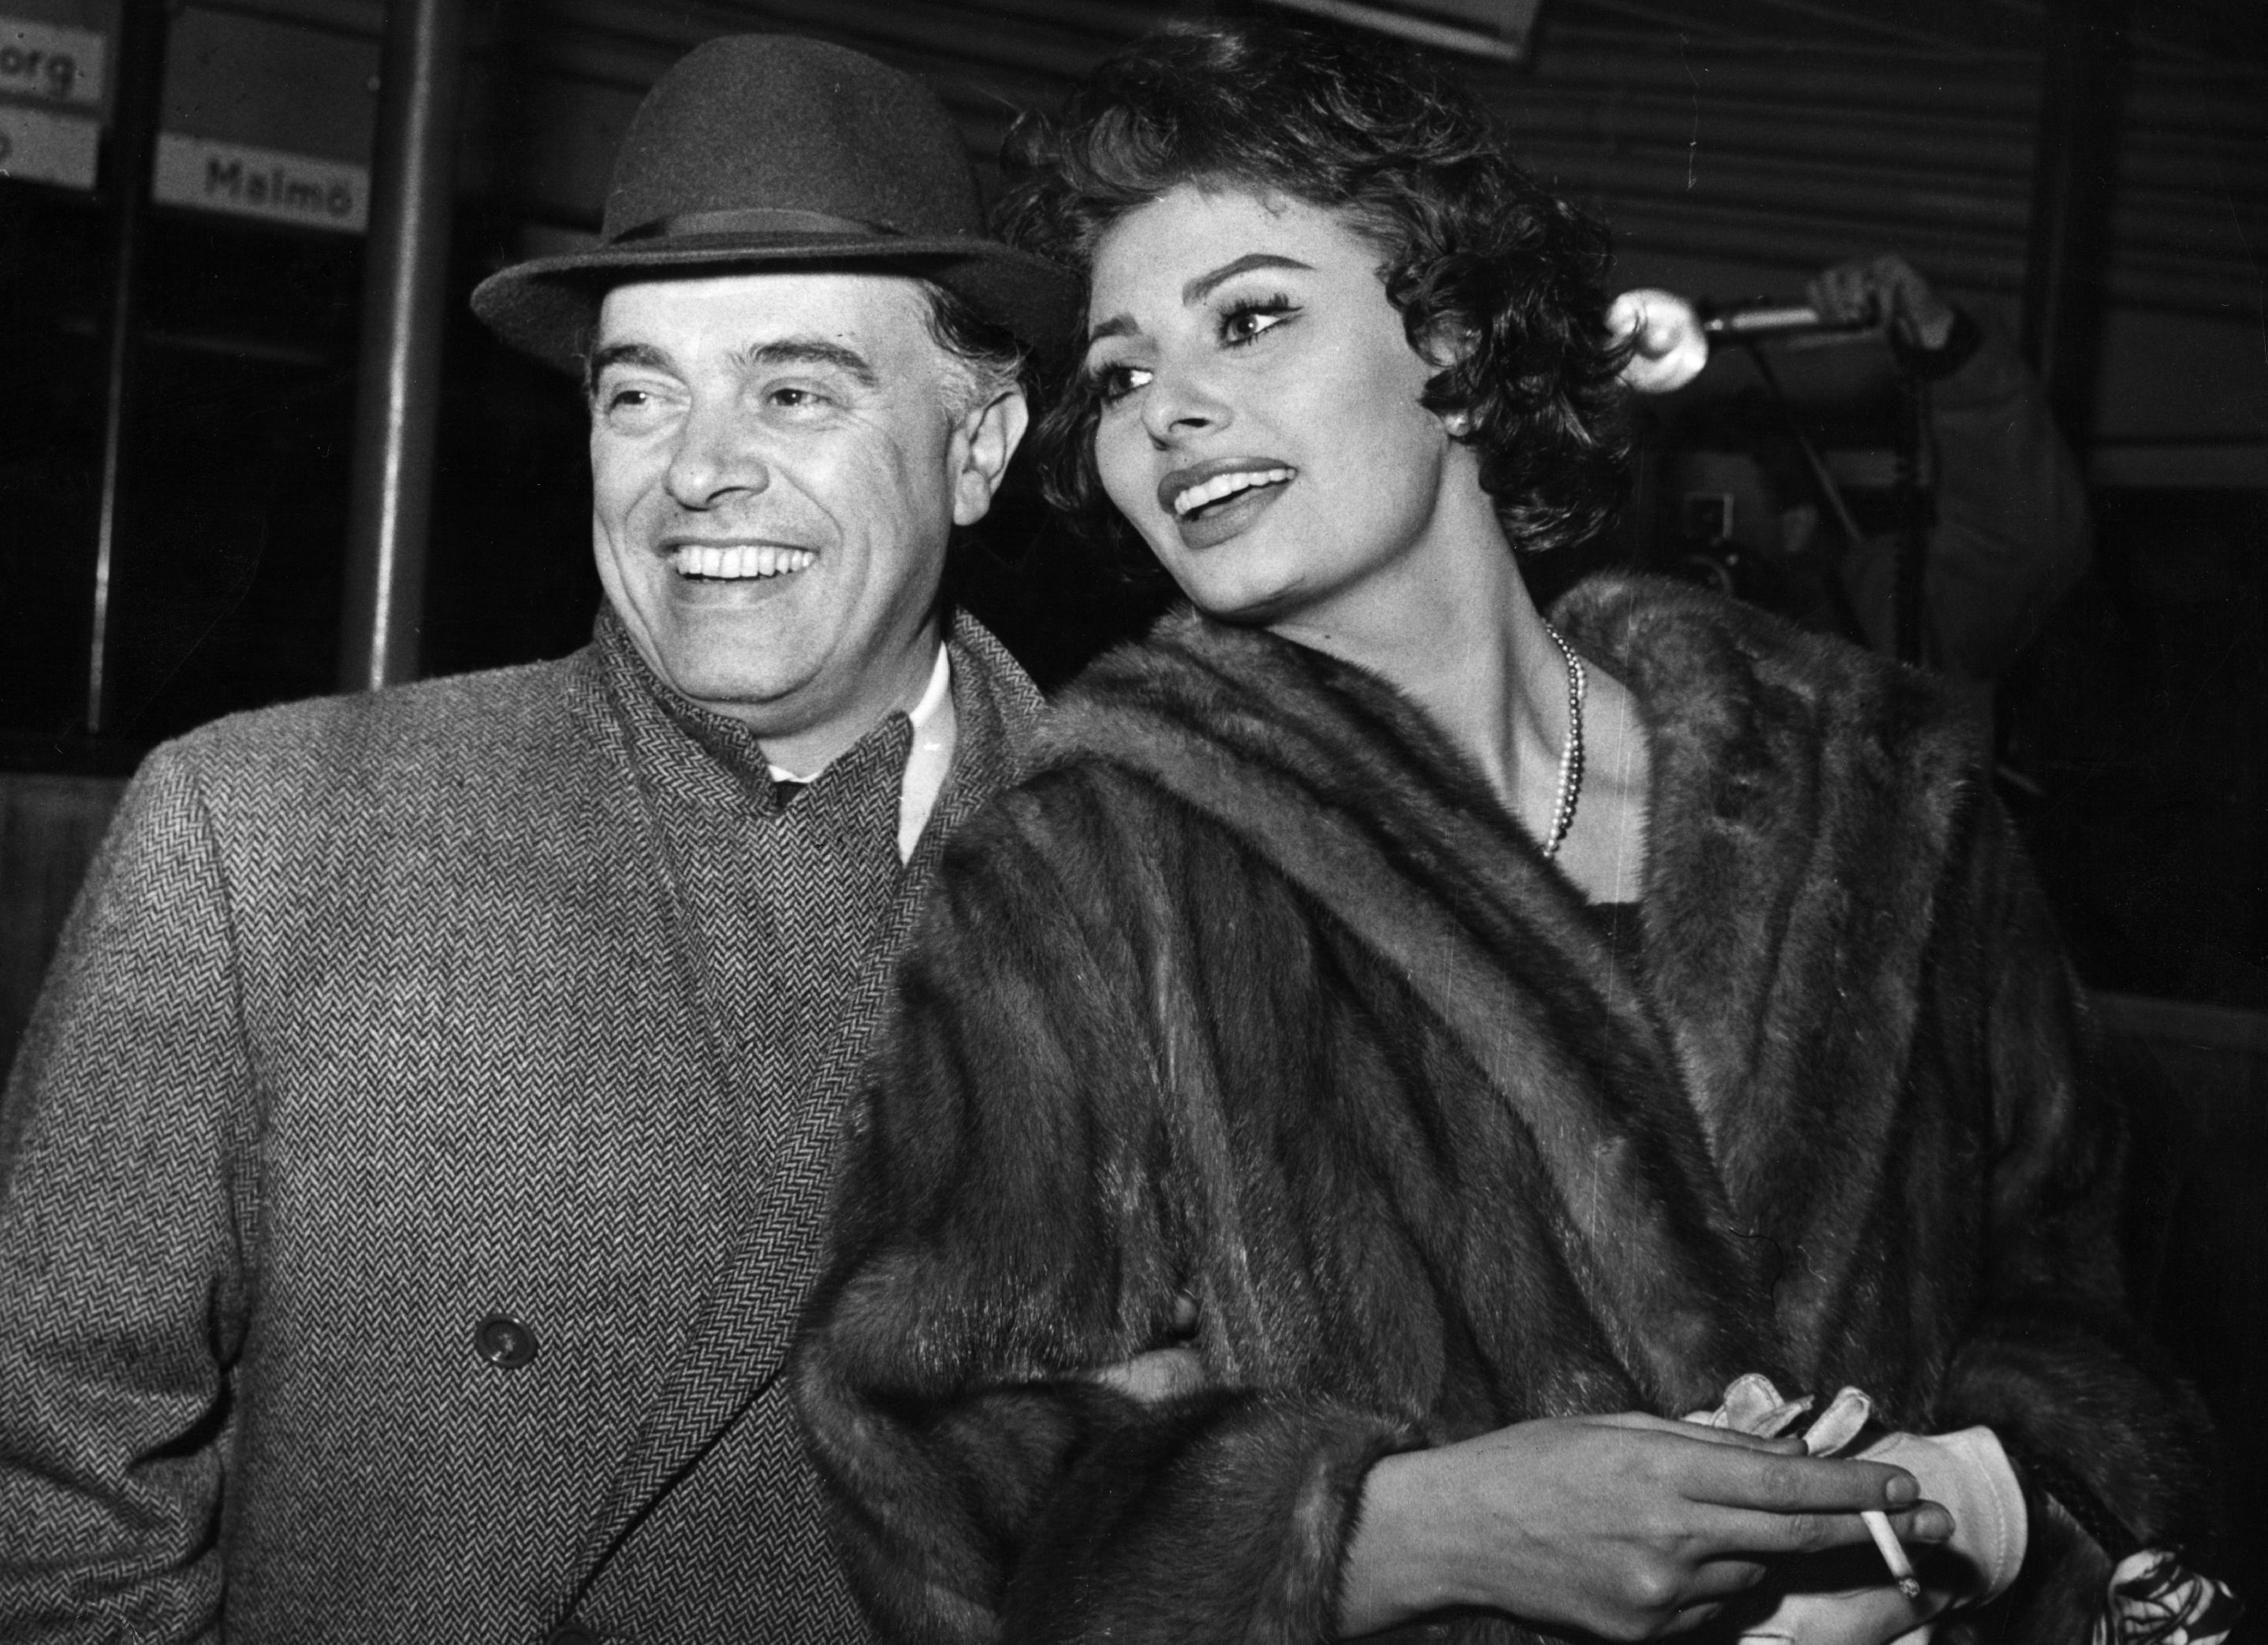 Carlo Ponti, et sa femme Sophia Loren, arrivant à Copenhague en route de Rome à Los Angeles. | Photo : Getty Images